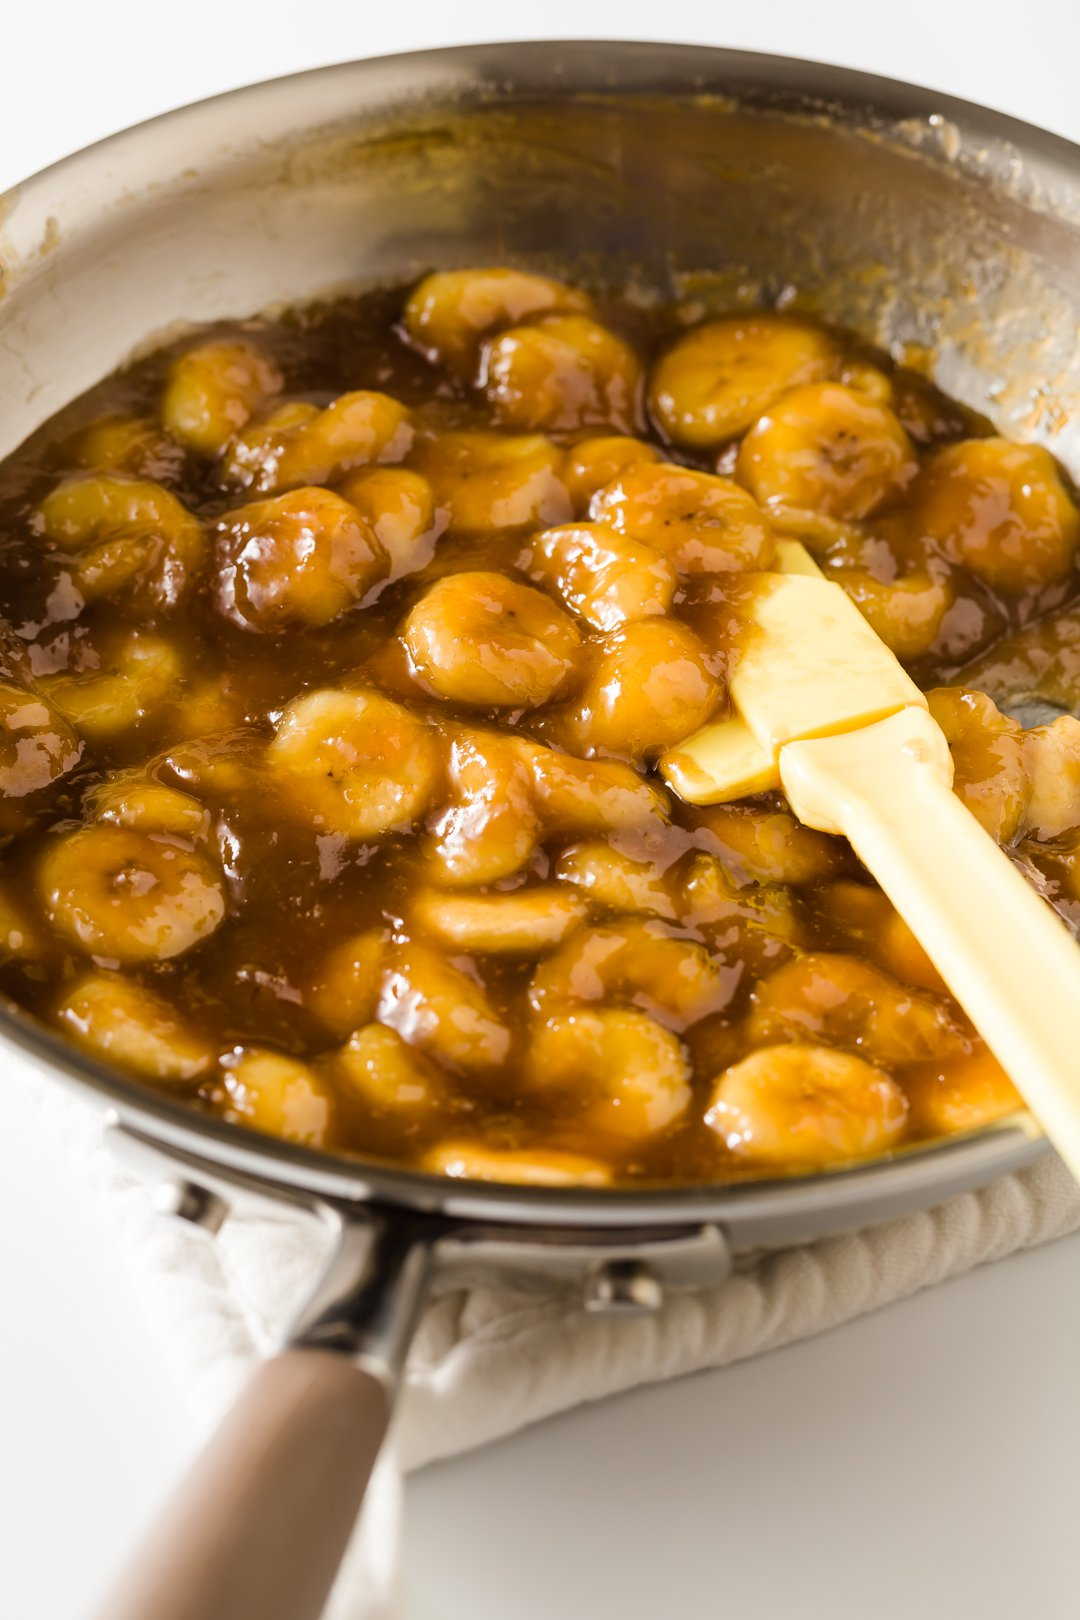 The Complete Guide to Caramelized Bananas